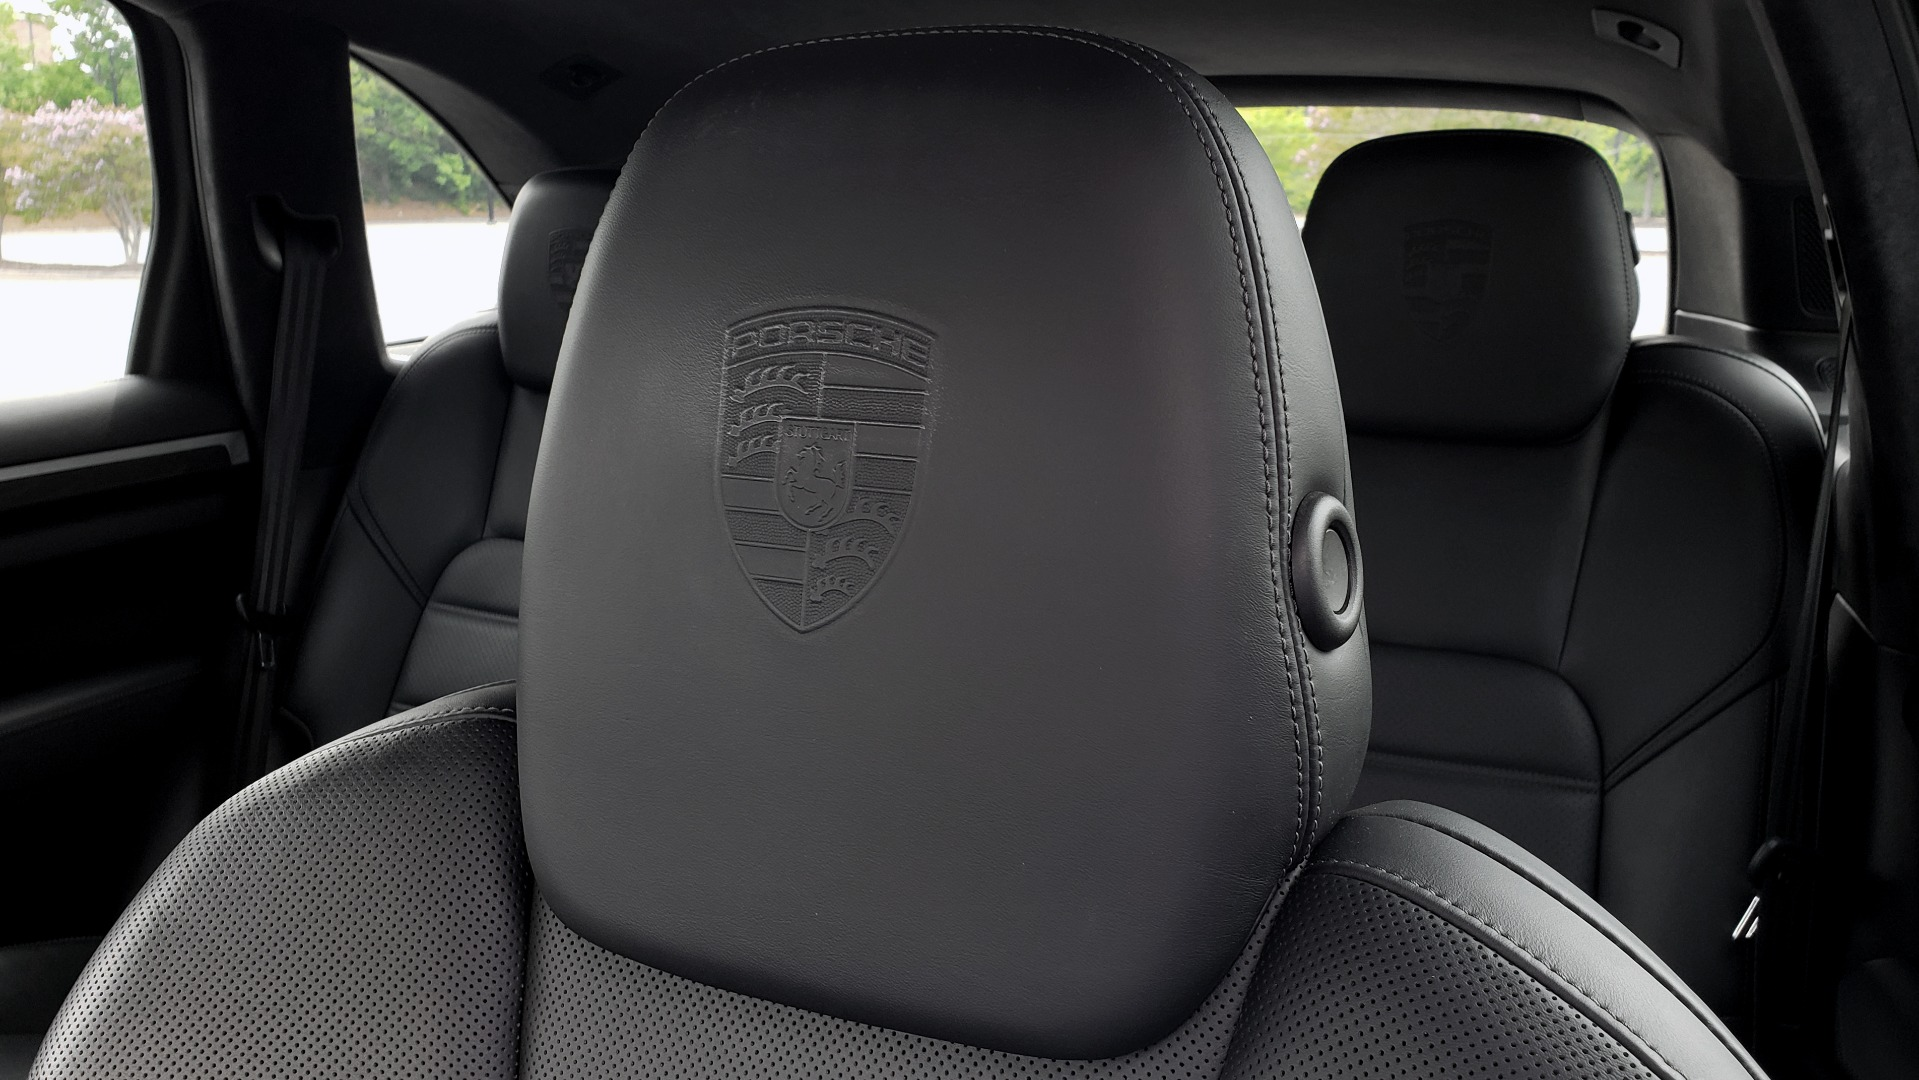 Used 2014 Porsche CAYENNE TURBO S / AWD / NAV / BOSE / PANO-ROOF / LCA / REARVIEW for sale Sold at Formula Imports in Charlotte NC 28227 43